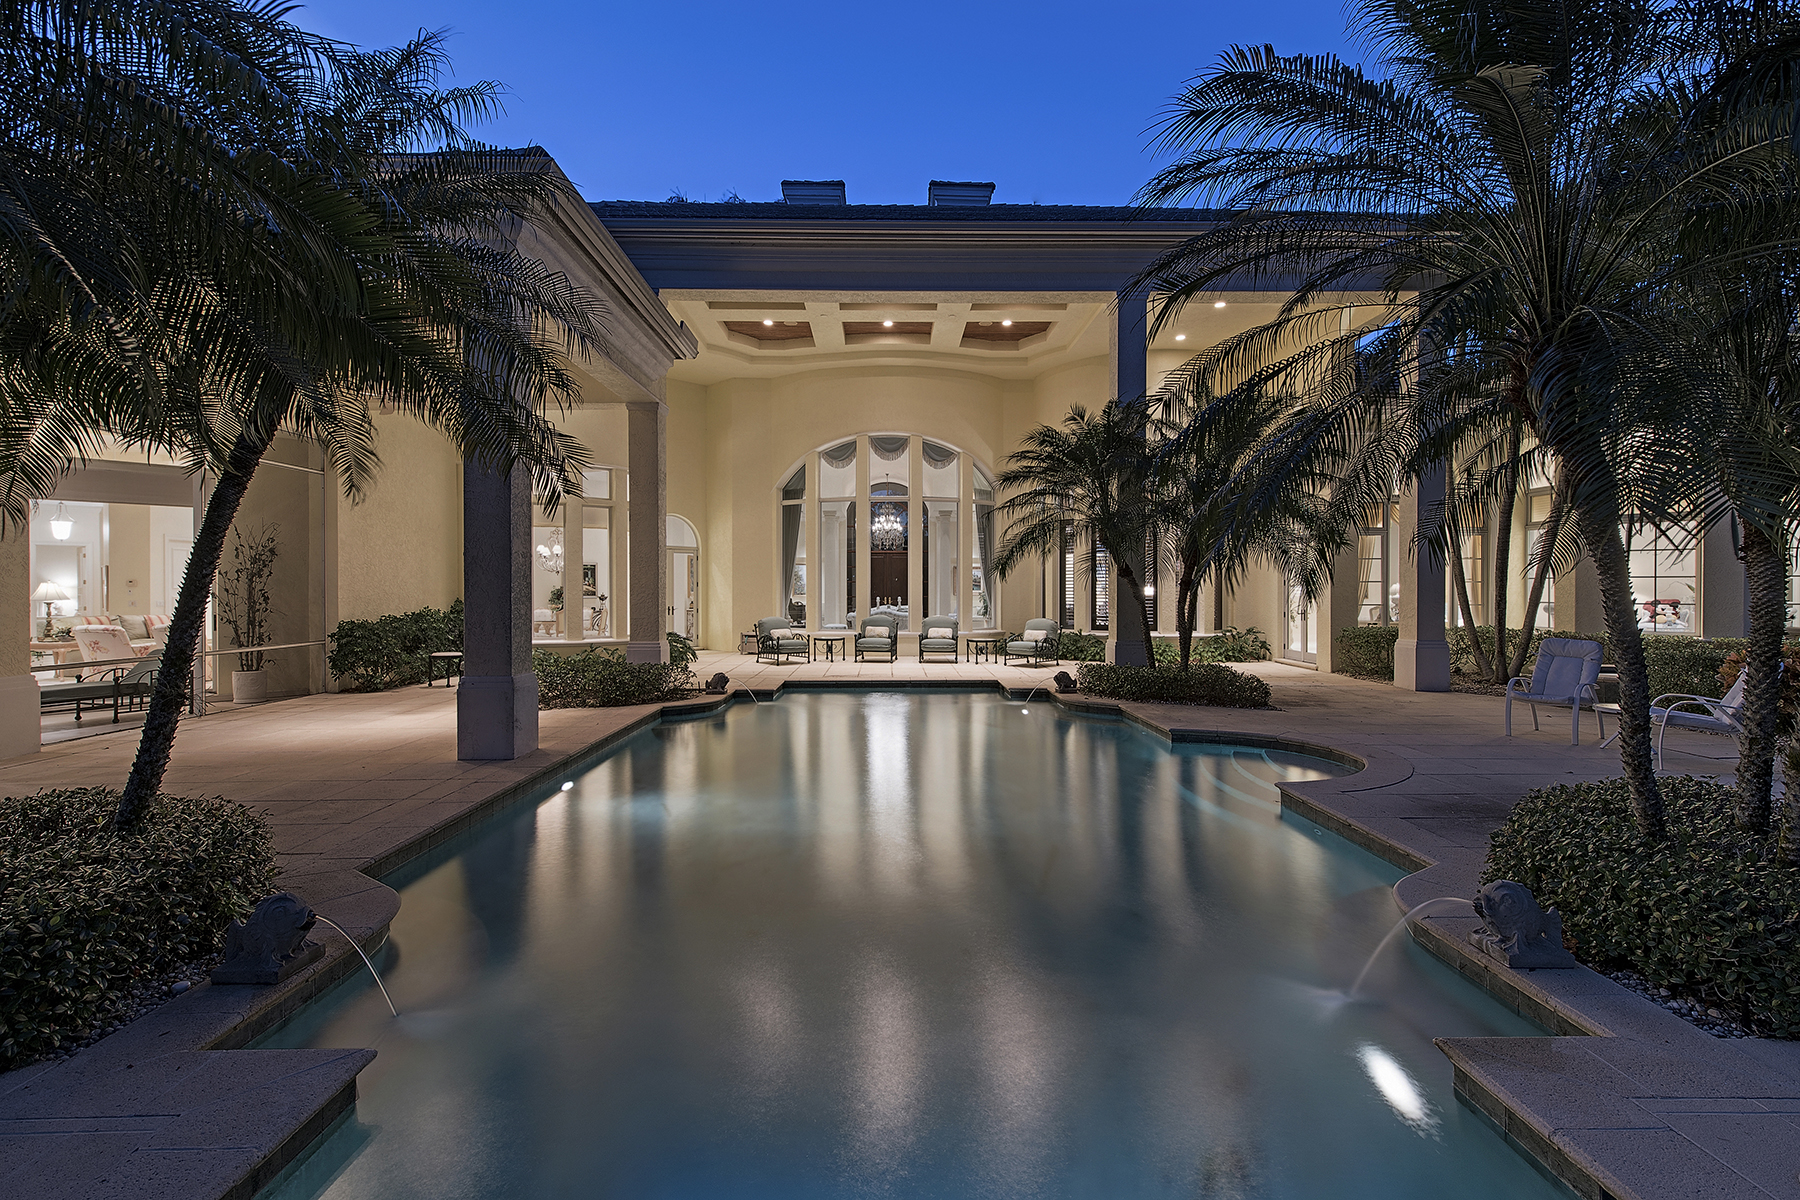 Single Family Home for Sale at QUAIL WEST 4448 Wayside Dr Naples, Florida, 34119 United States